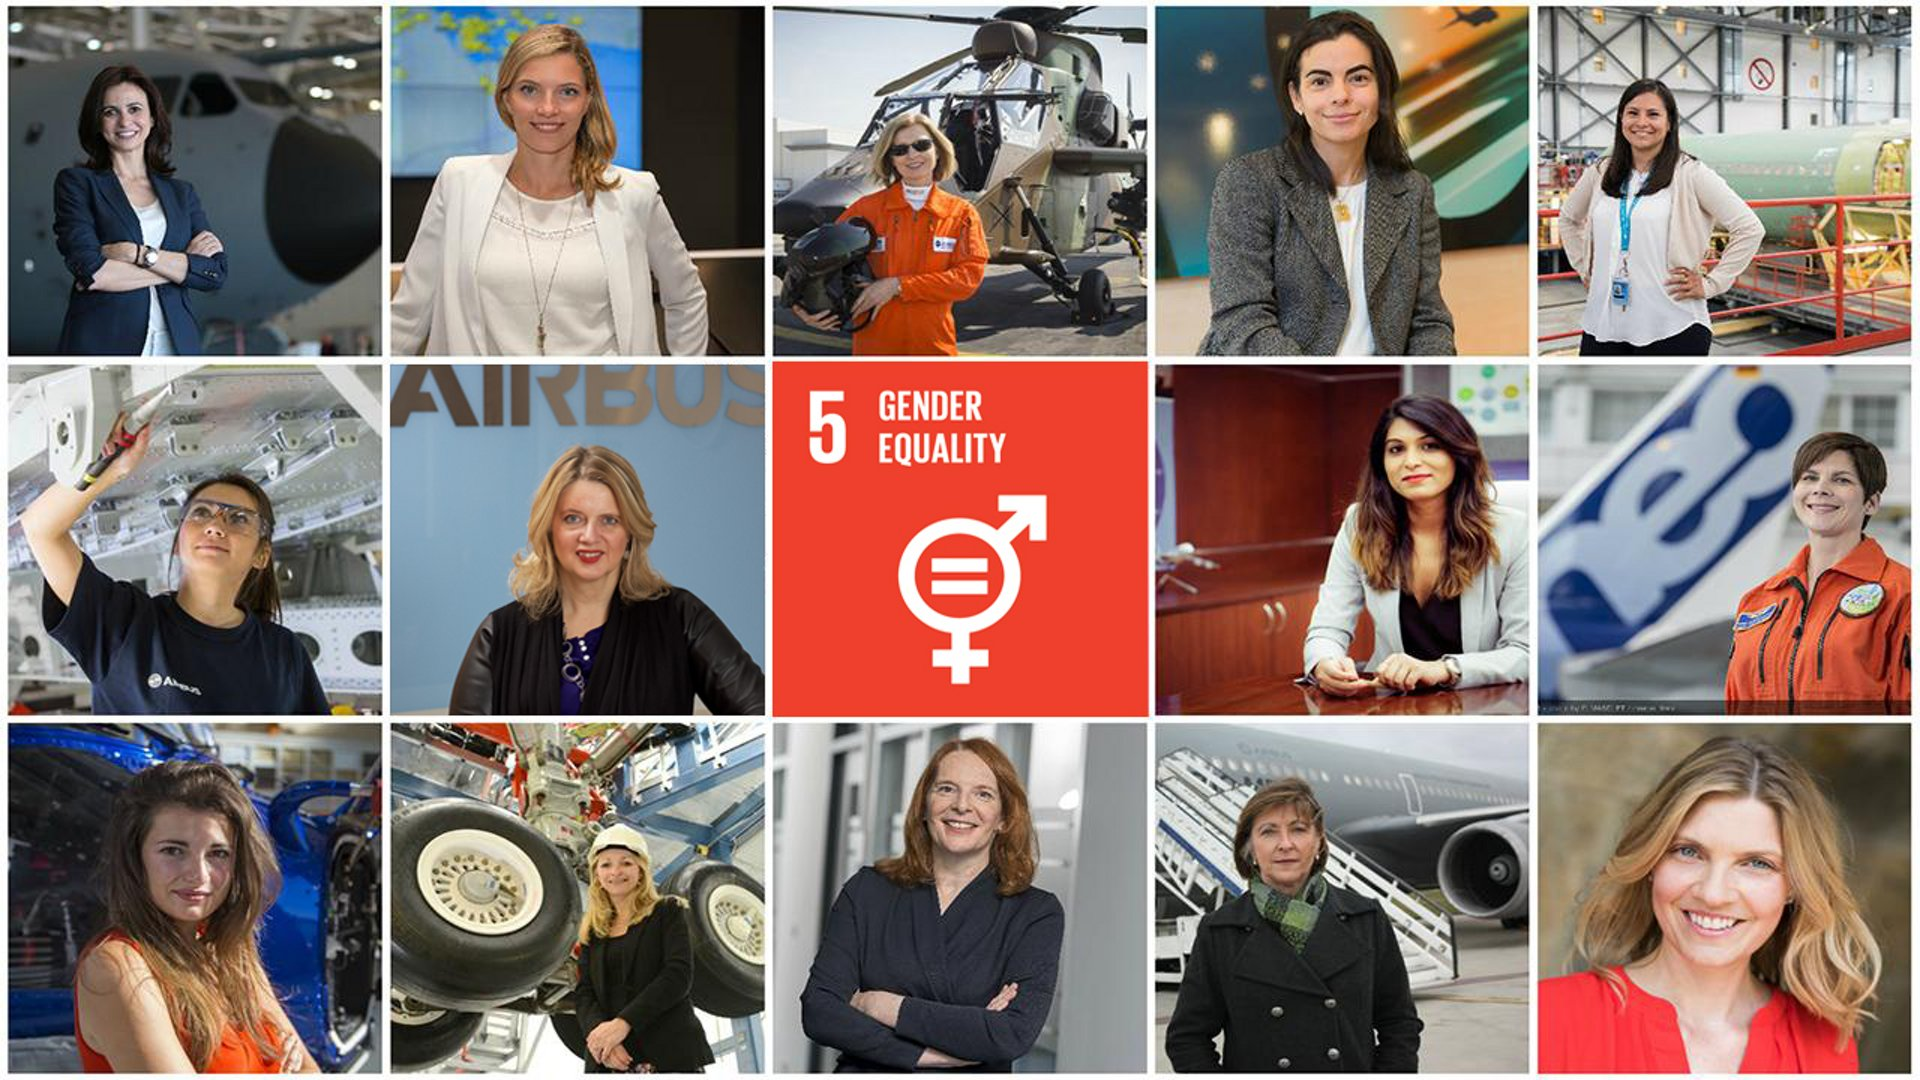 Women At Airbus Collage